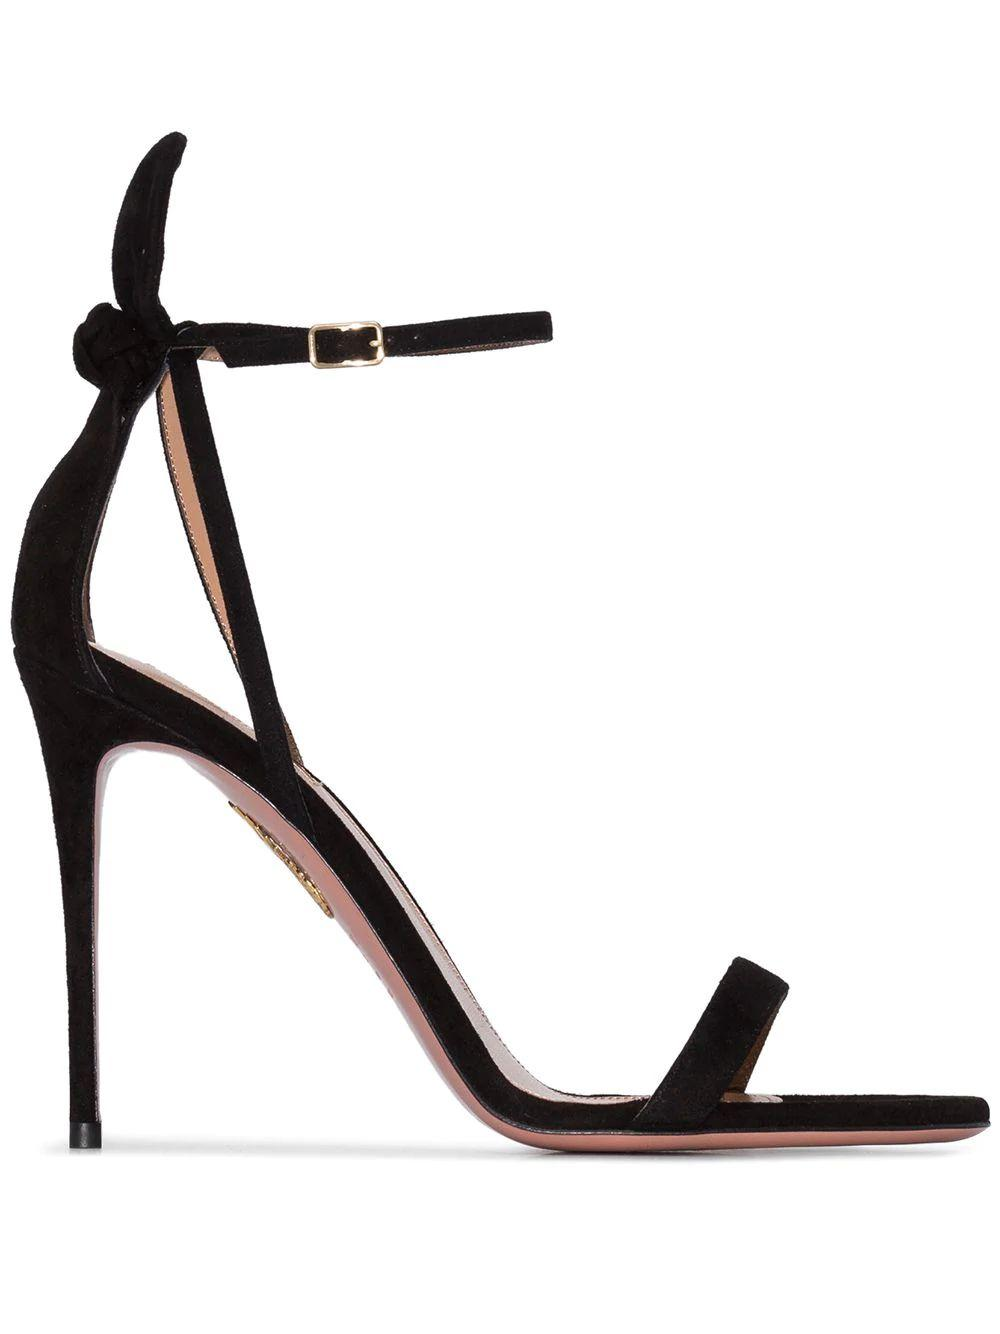 Deneuve 105MM Suede Sandal With Ankle Strap